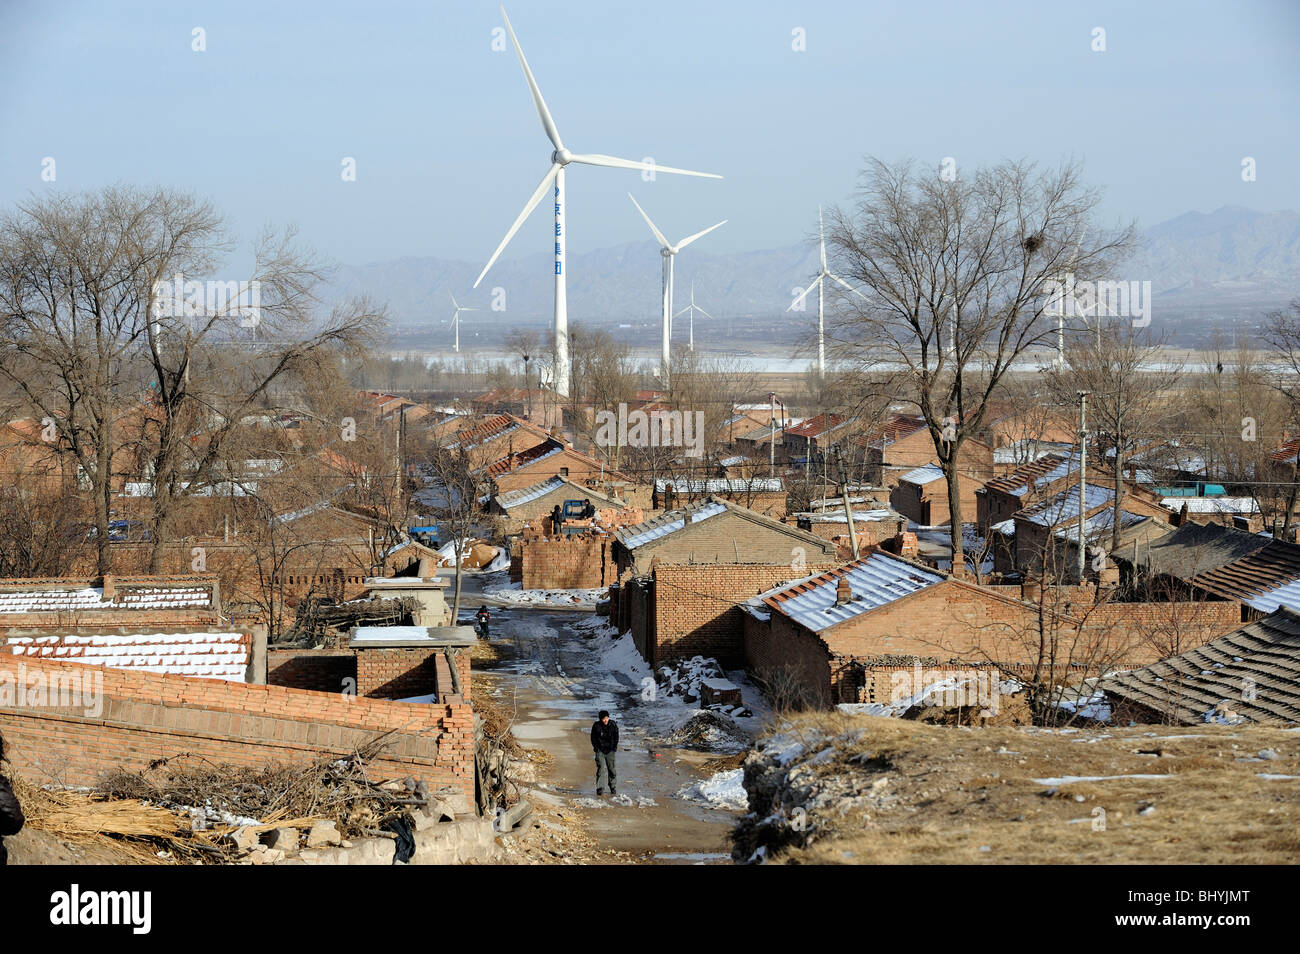 A village near Wind Farm in Huailai, Hebei, China. 02-Mar-2010 - Stock Image